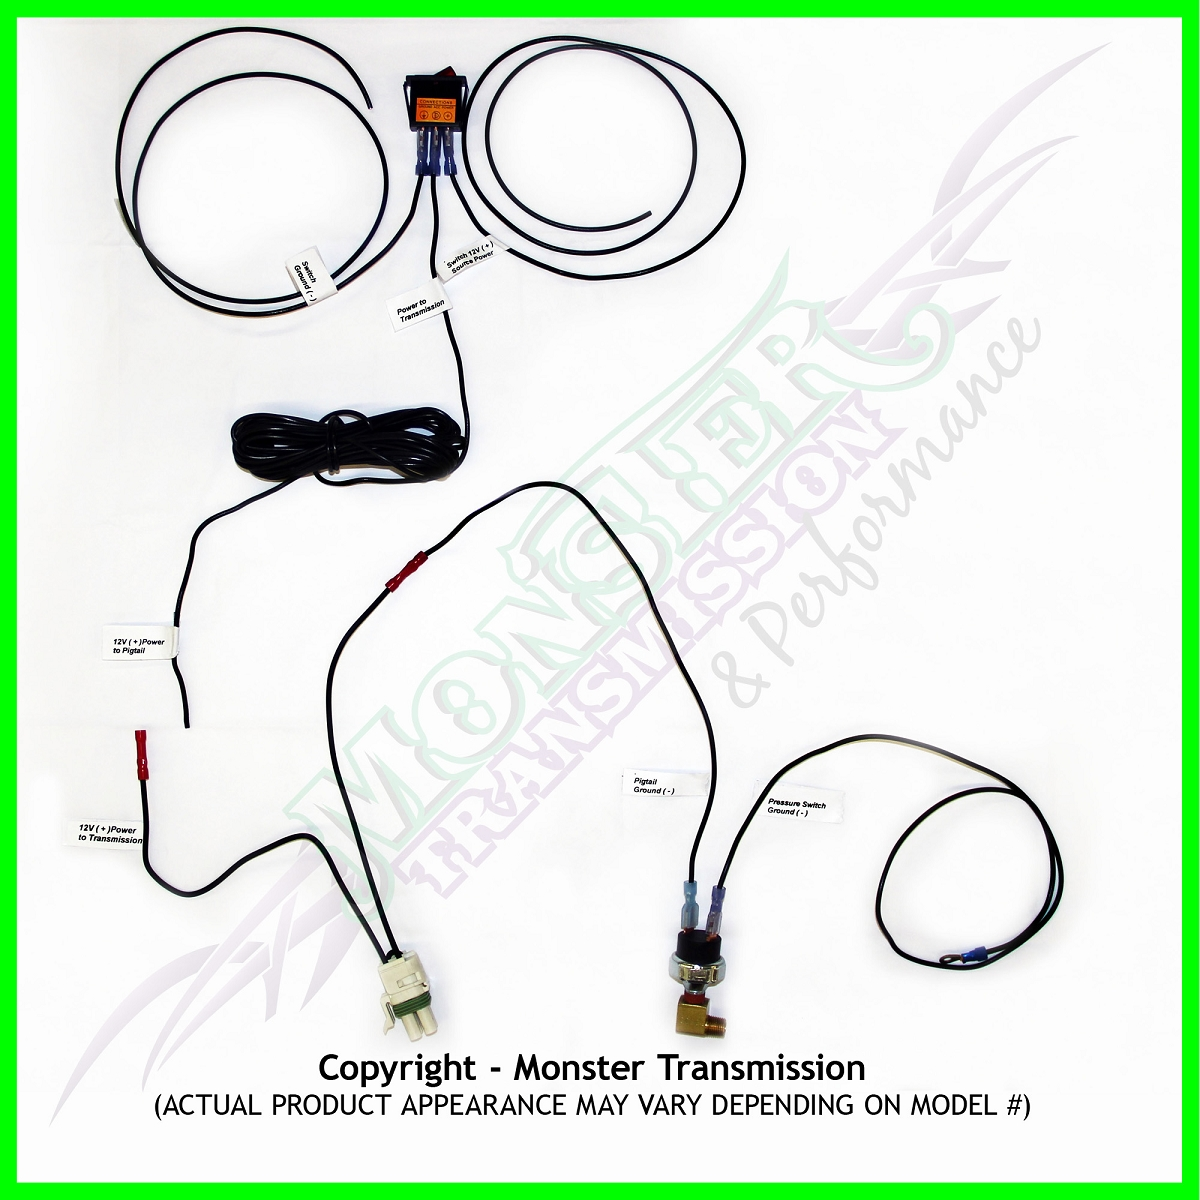 700r4 Torque Converter Lock Up Wiring Kit Library Of Diagrams Lockup 200r4 Diagram 27 Images Switch Easy